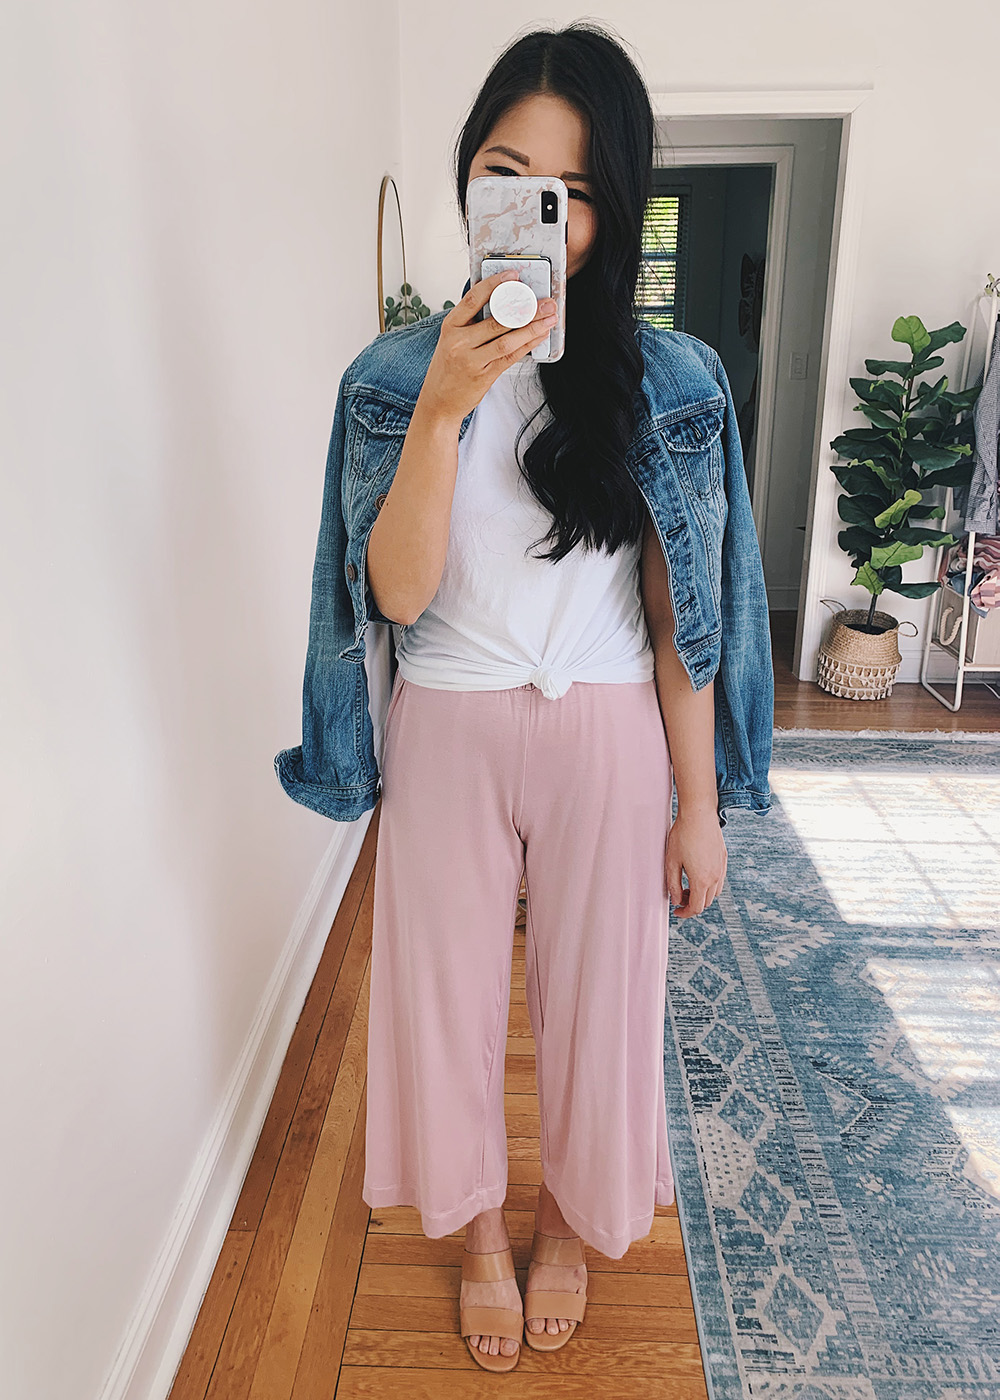 Casual Outfit for Women: White Knotted T-Shirt, Denim Jacket, Pink Lounge Pants